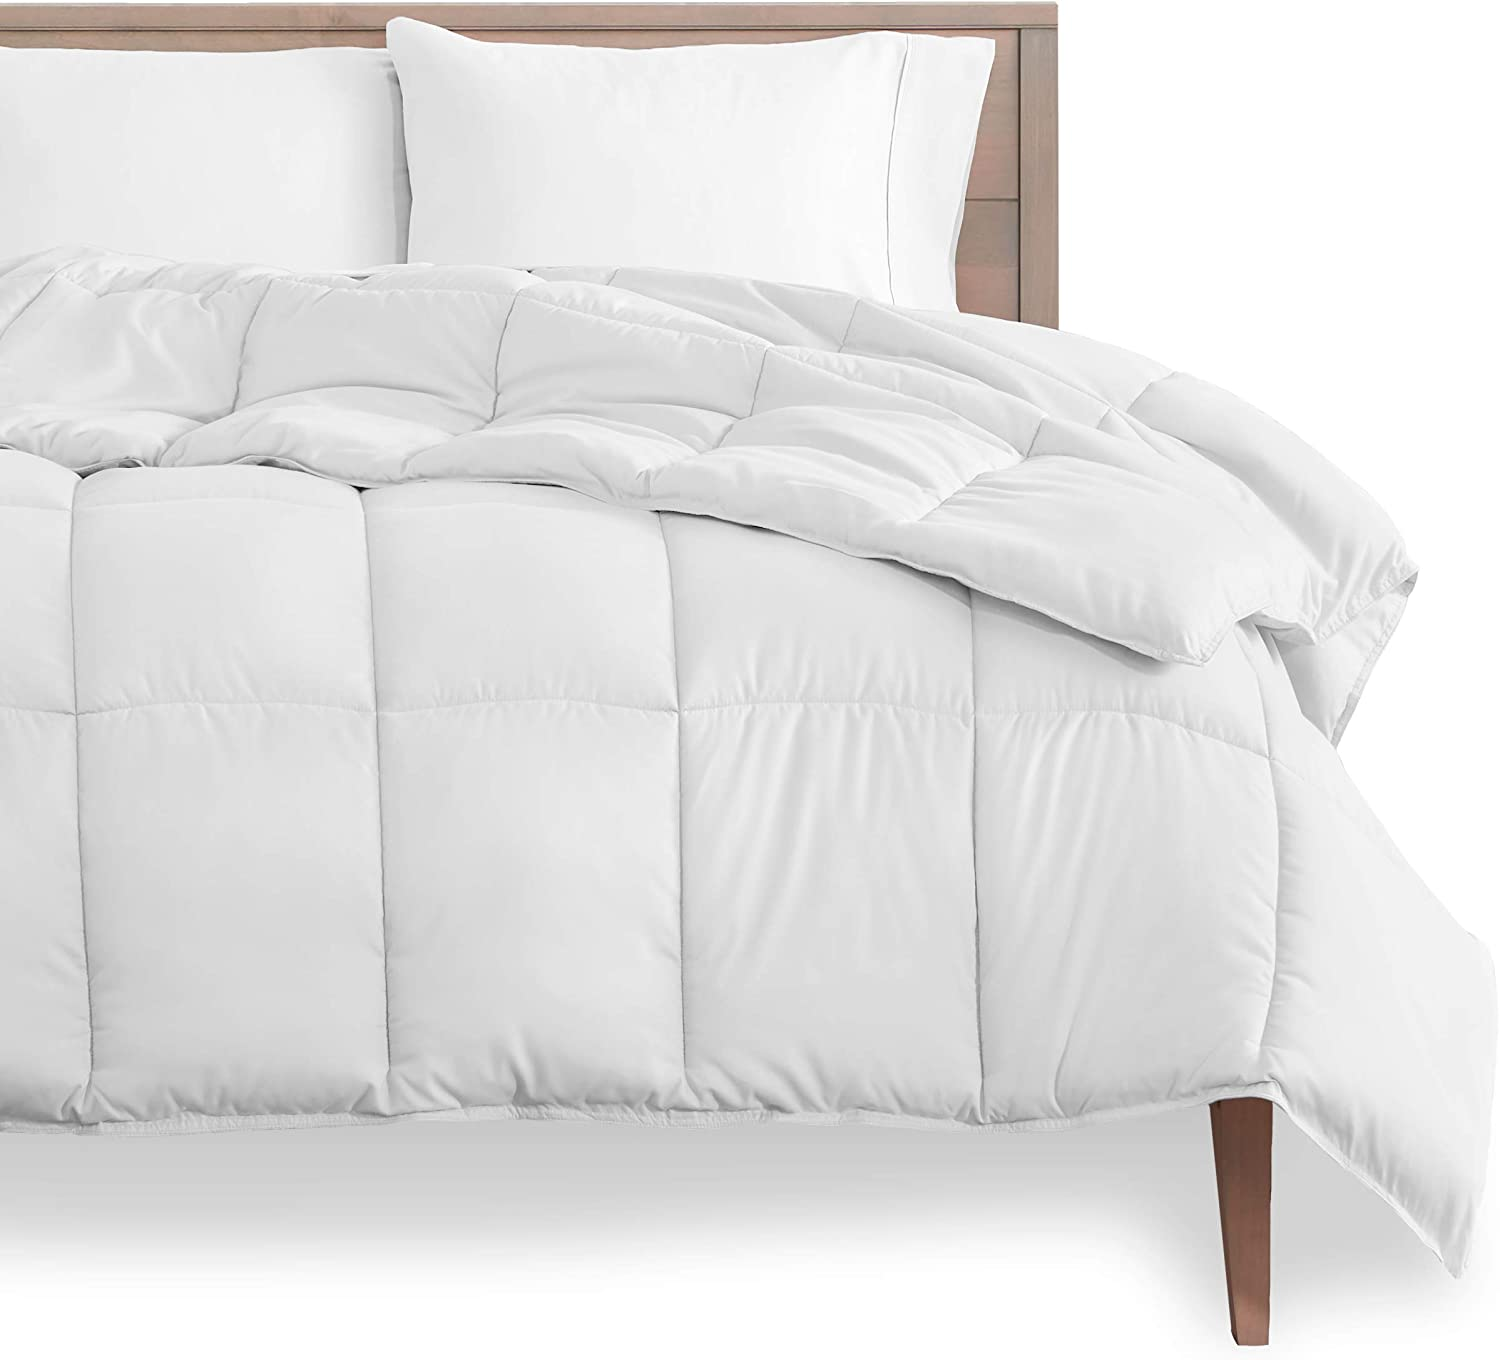 Bare Home Duvet Insert Comforter - Queen Size - Goose Down Alternative - Ultra-Soft - Premium 1800 Series - Hypoallergenic - All Season Breathable Warmth (Queen, White)